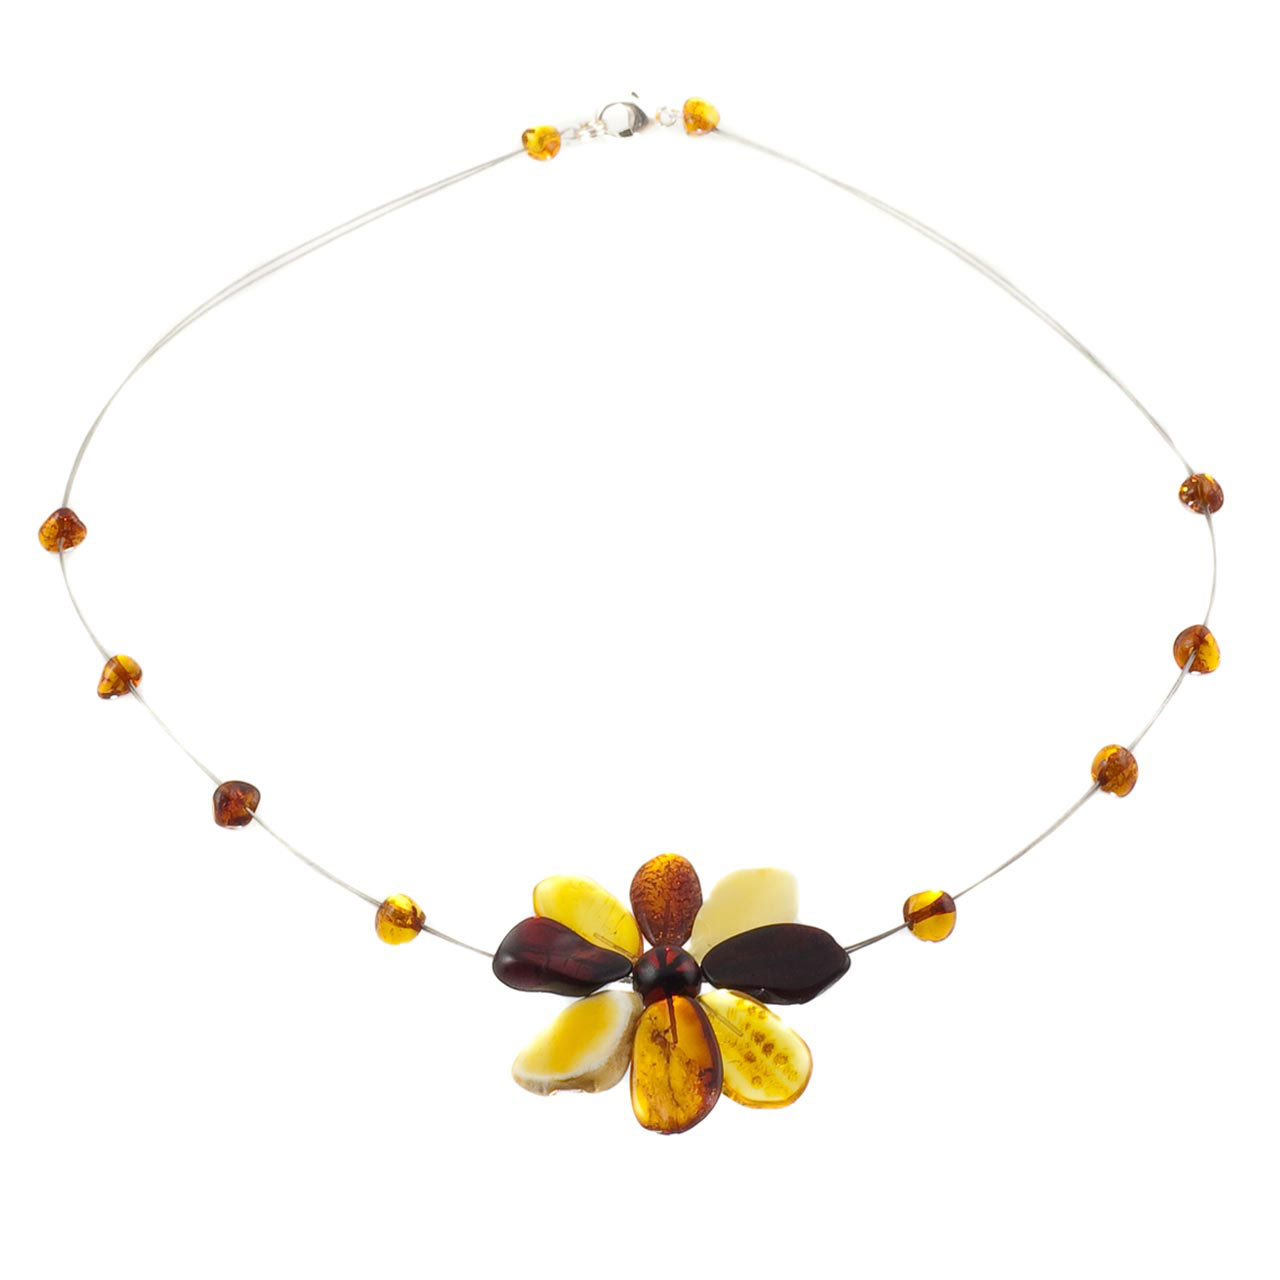 Amber flower necklace 1